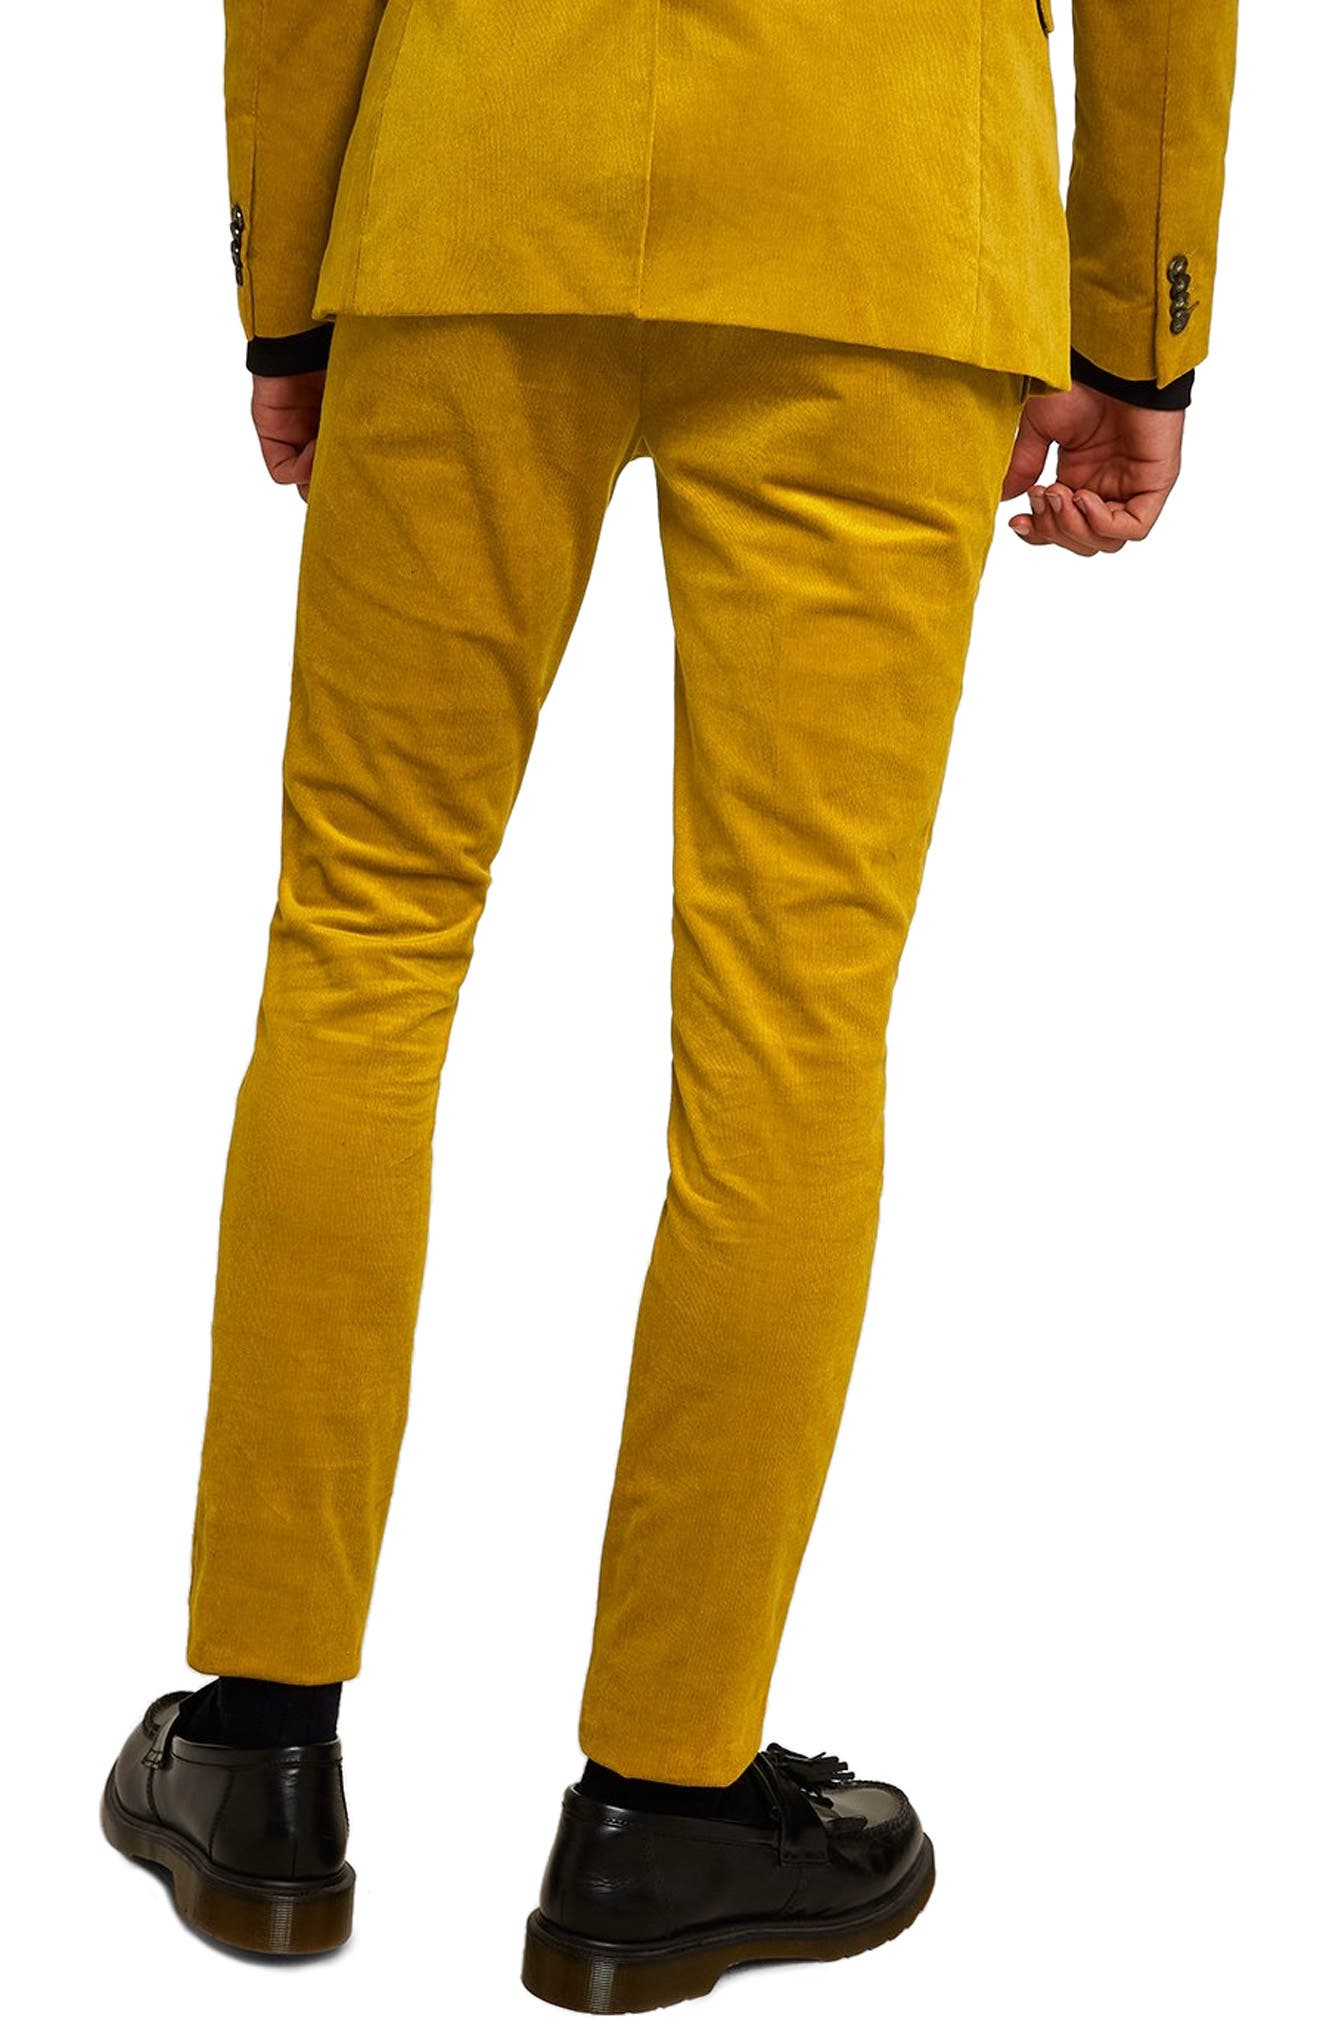 Super Skinny Fit Corduroy Trousers,                             Alternate thumbnail 2, color,                             YELLOW